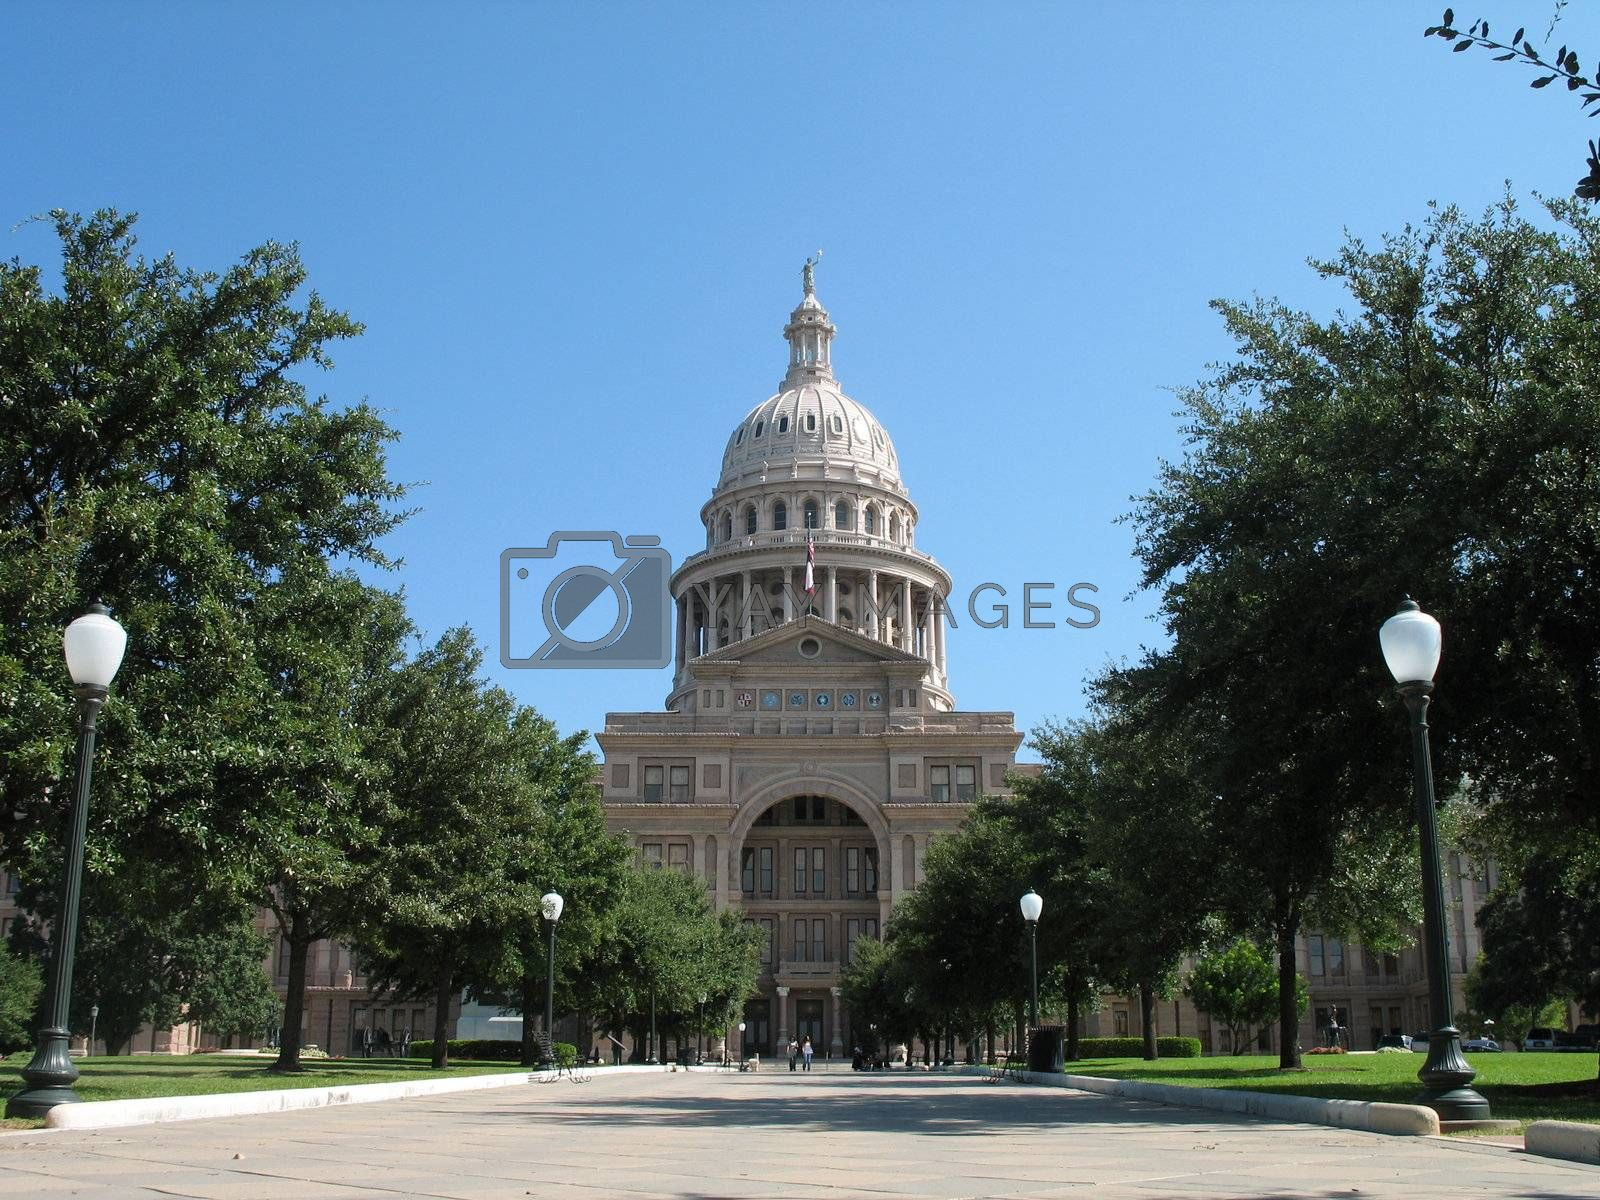 The south walkway and entrance to the Texas capitol building in Austin.